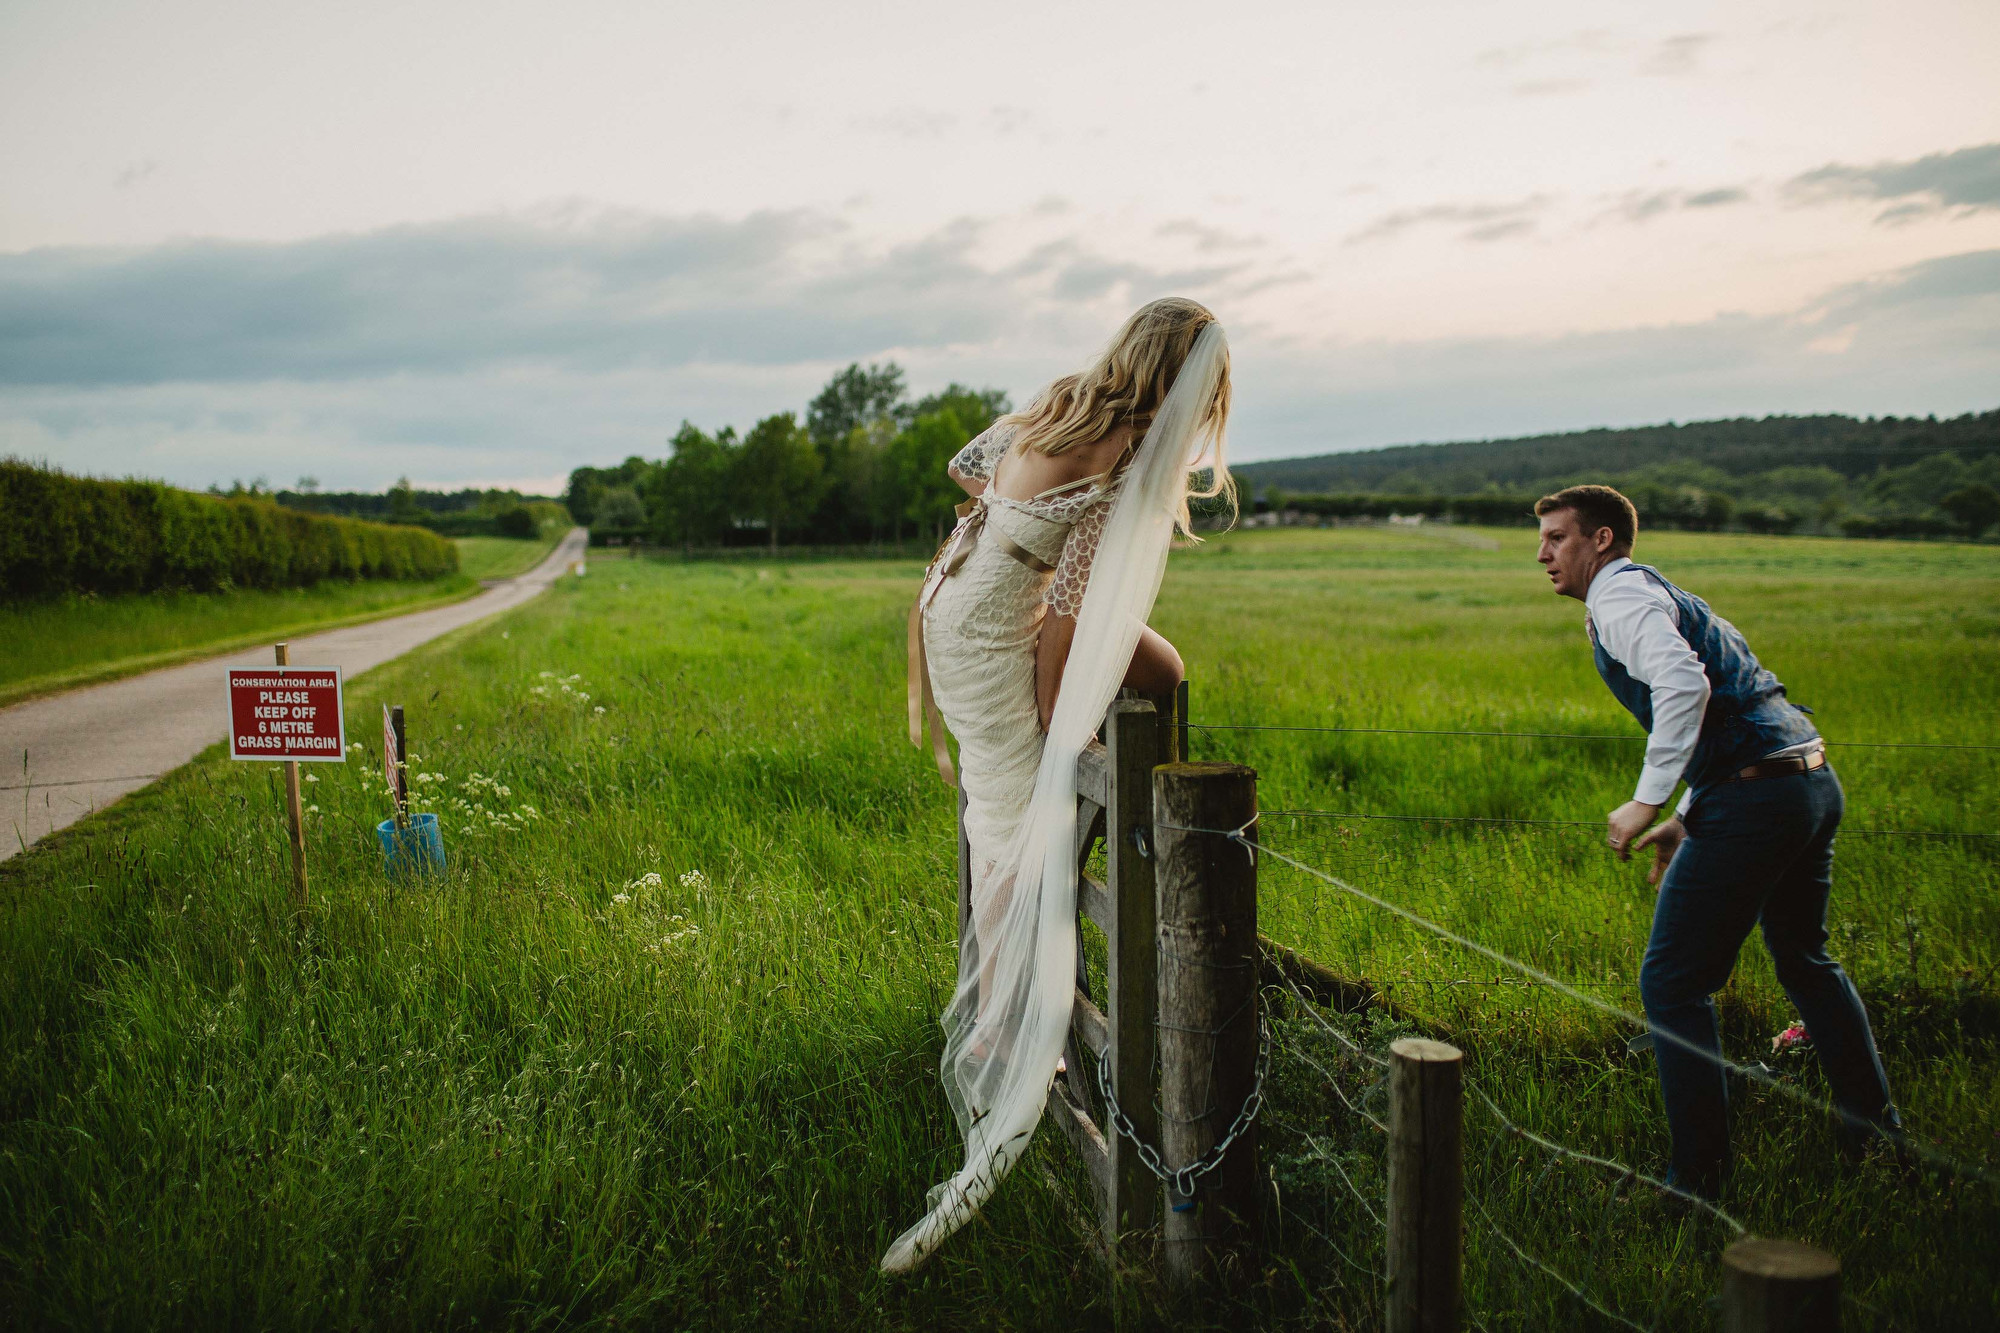 weddings at Inkersall farm